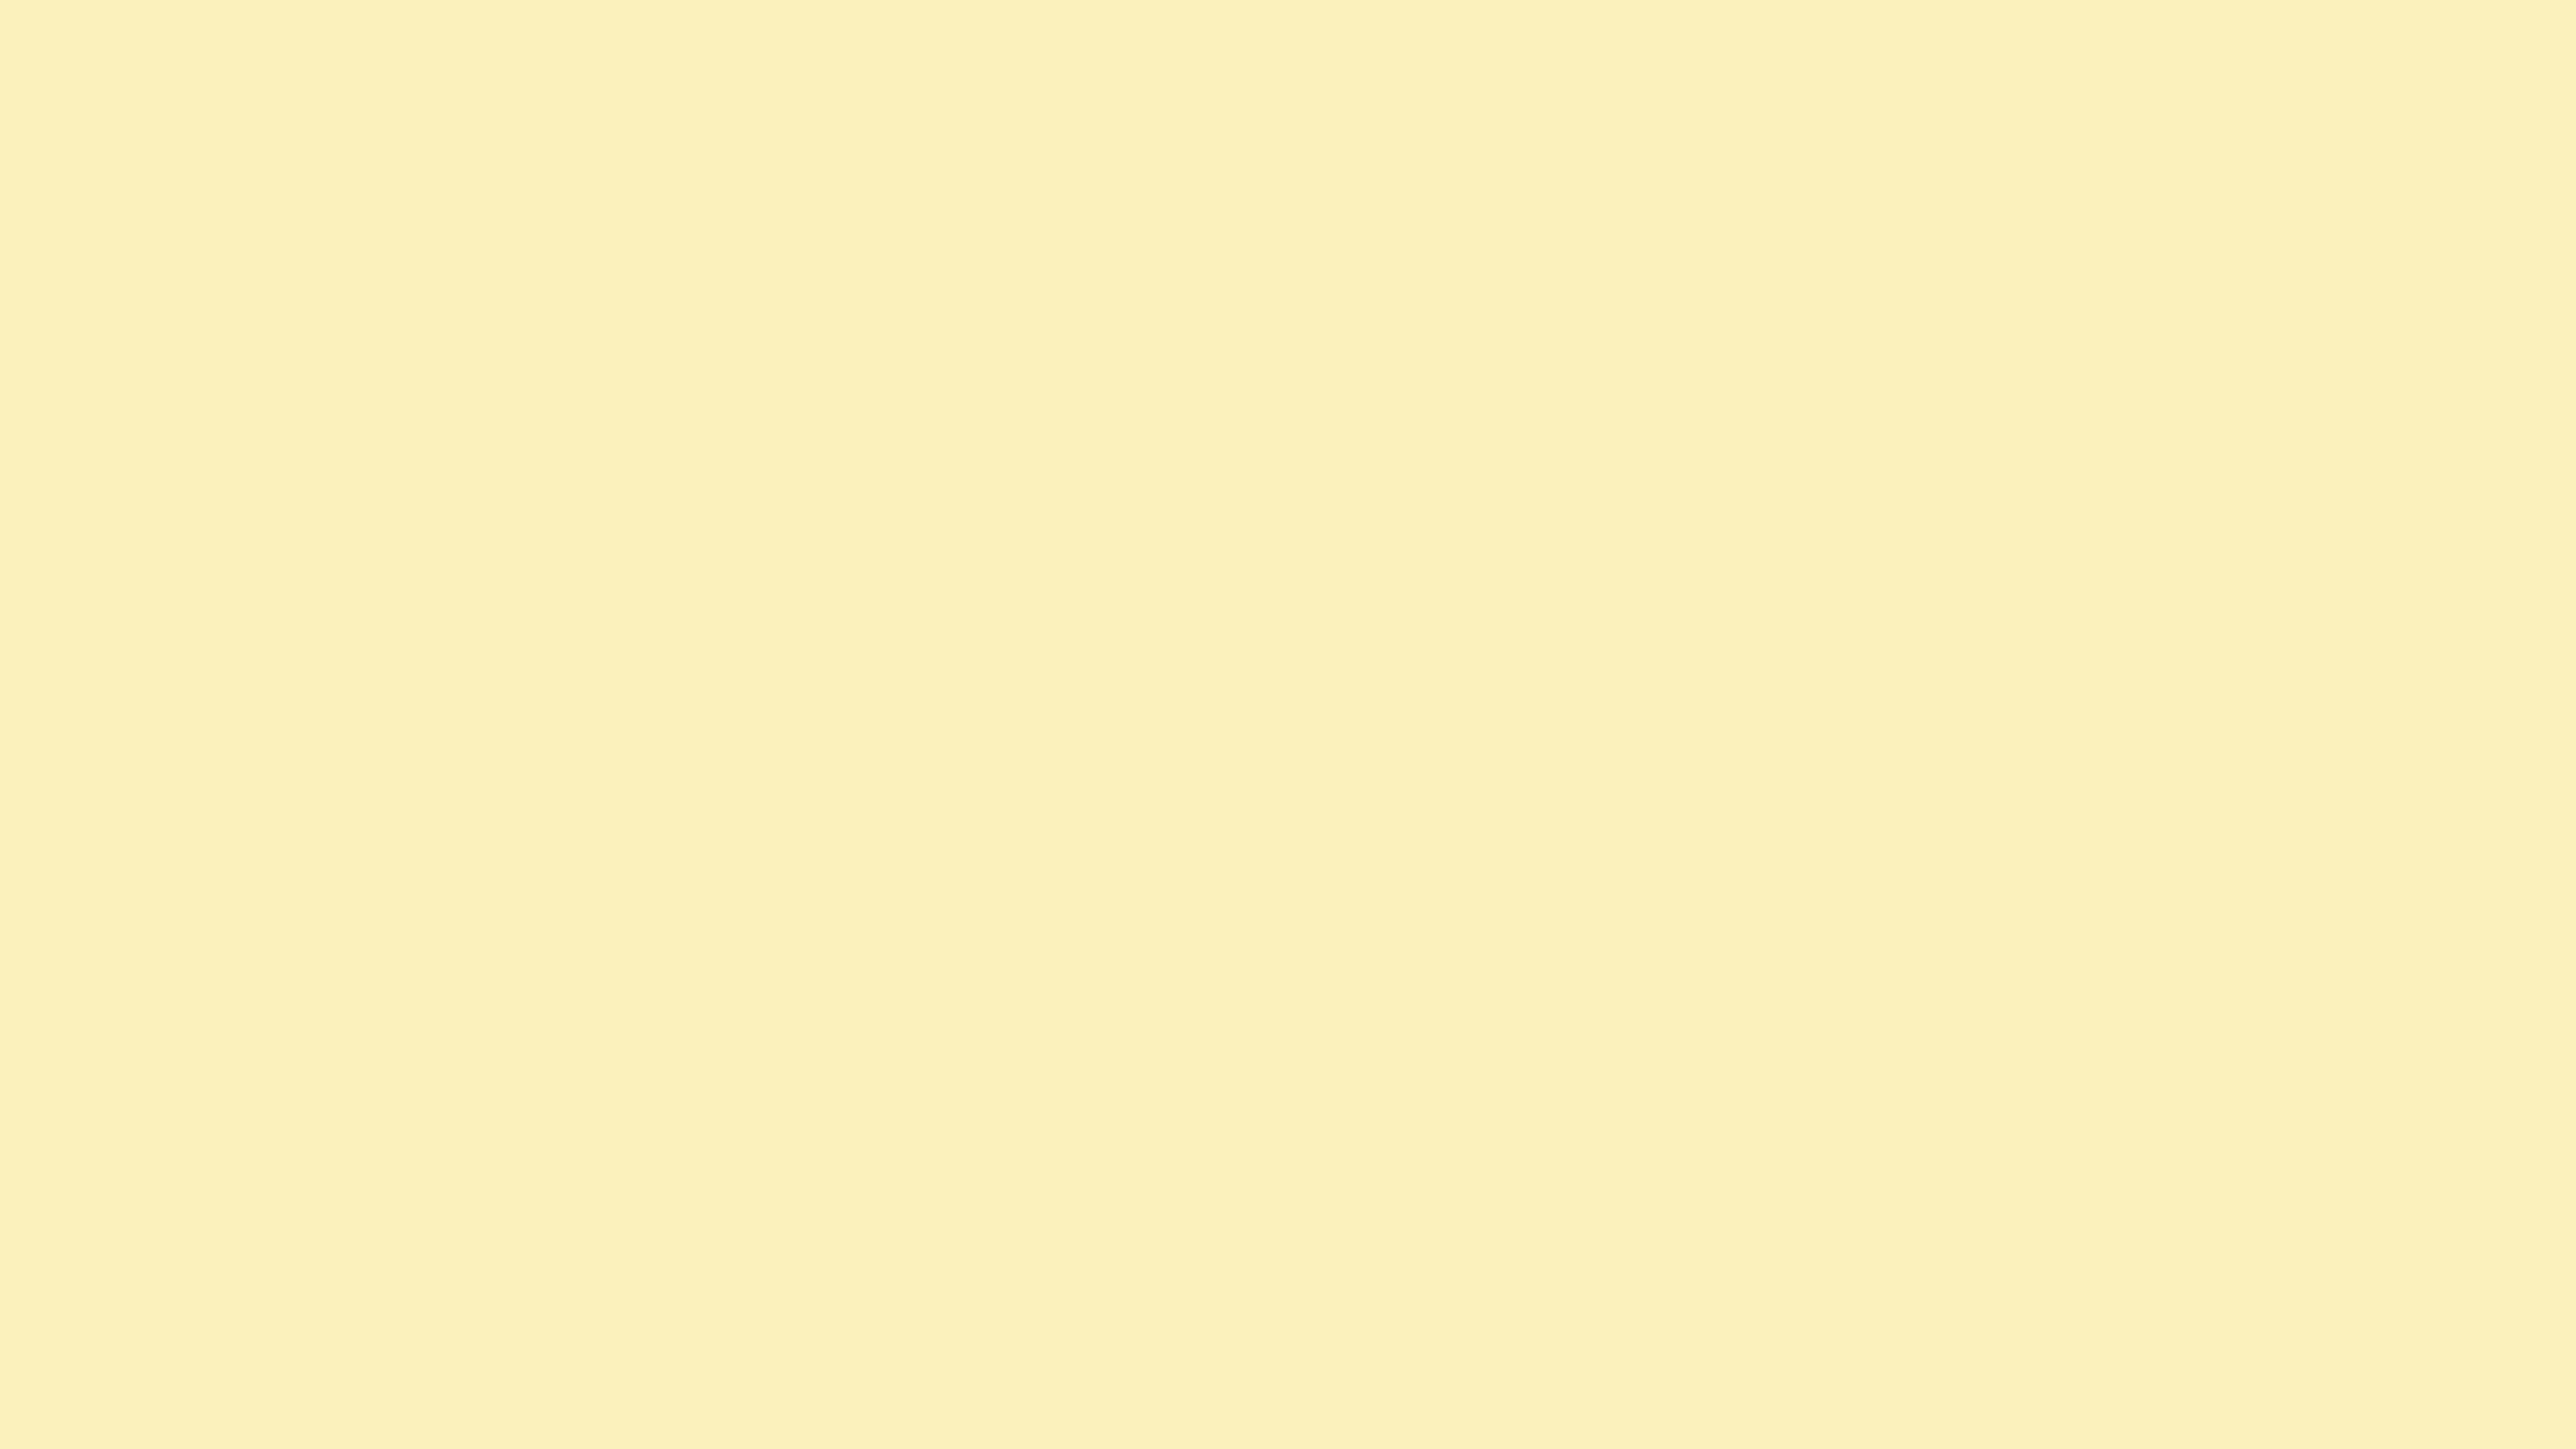 7680x4320 Blond Solid Color Background